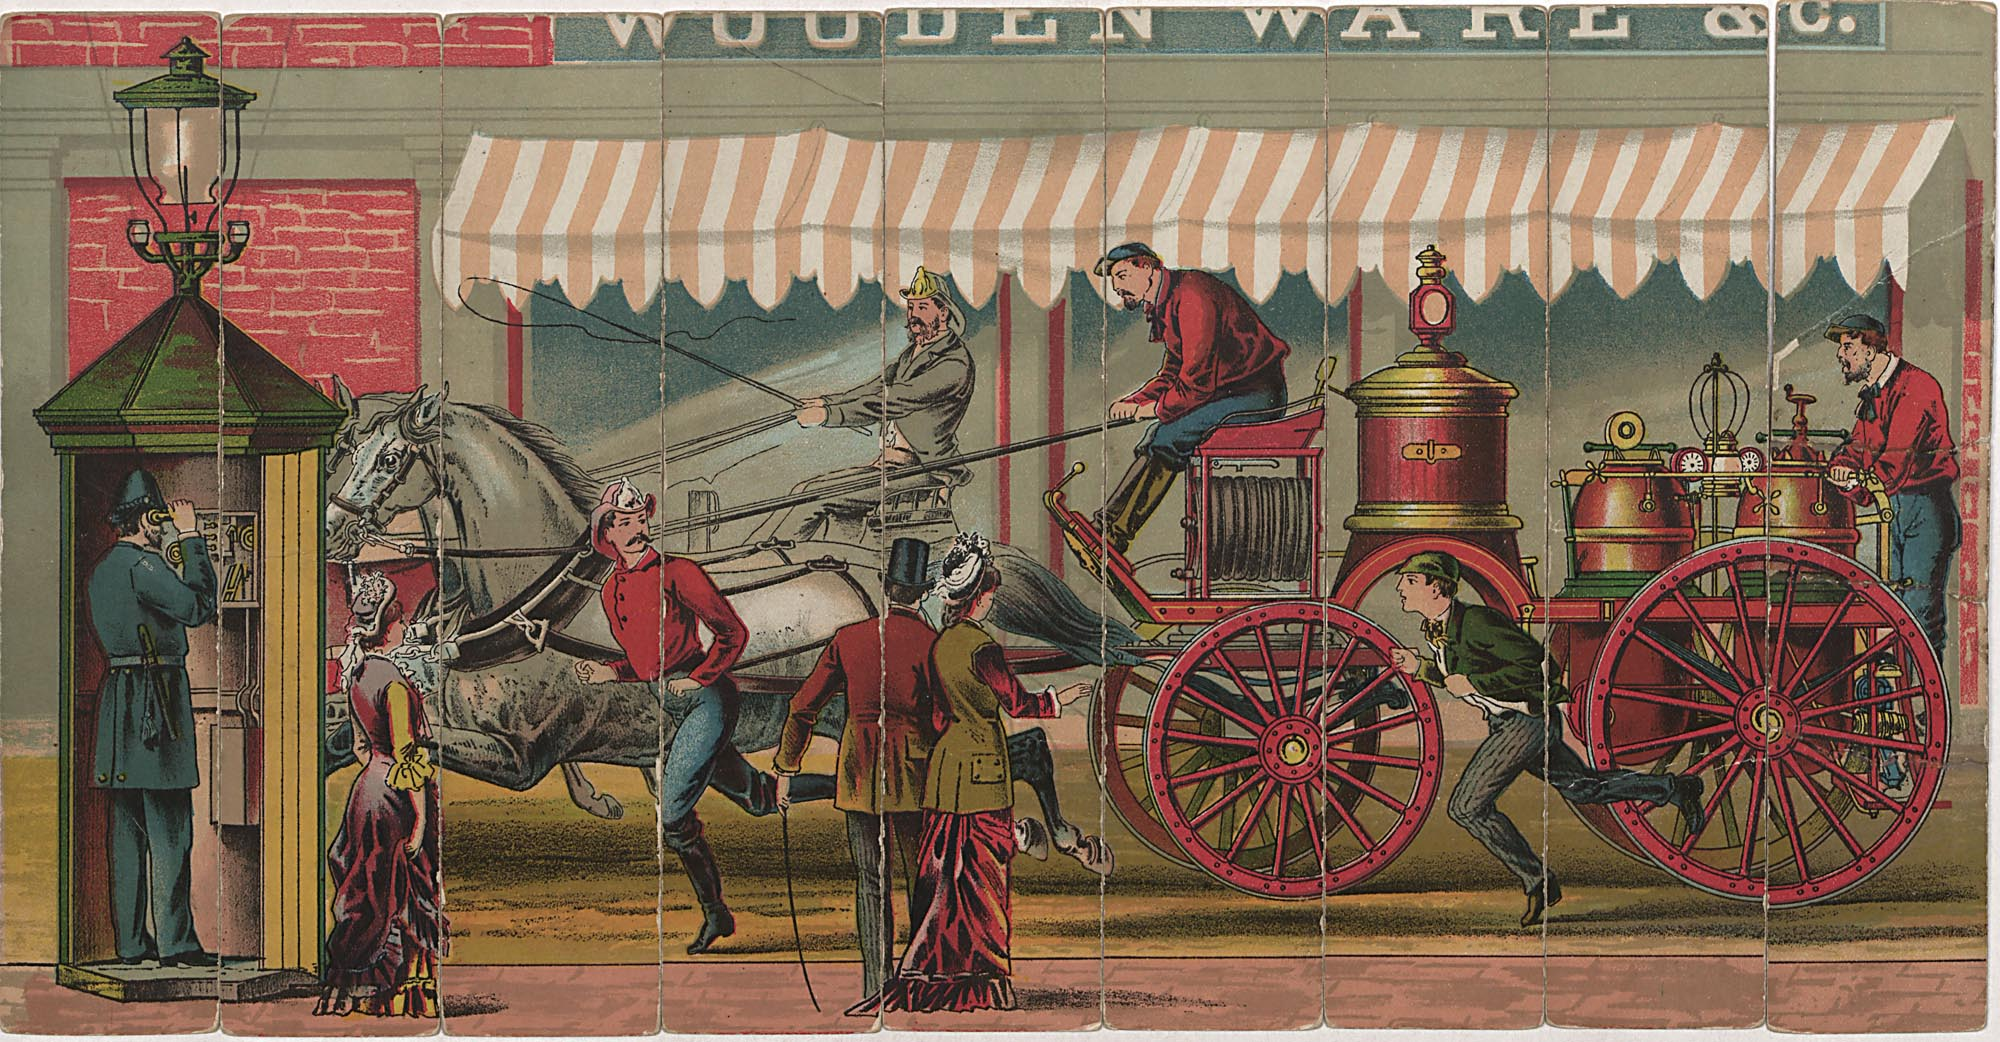 Picture of chemical engine from American fire department toy, Doc. 55, Joseph Downs Collection, Winterthur Library